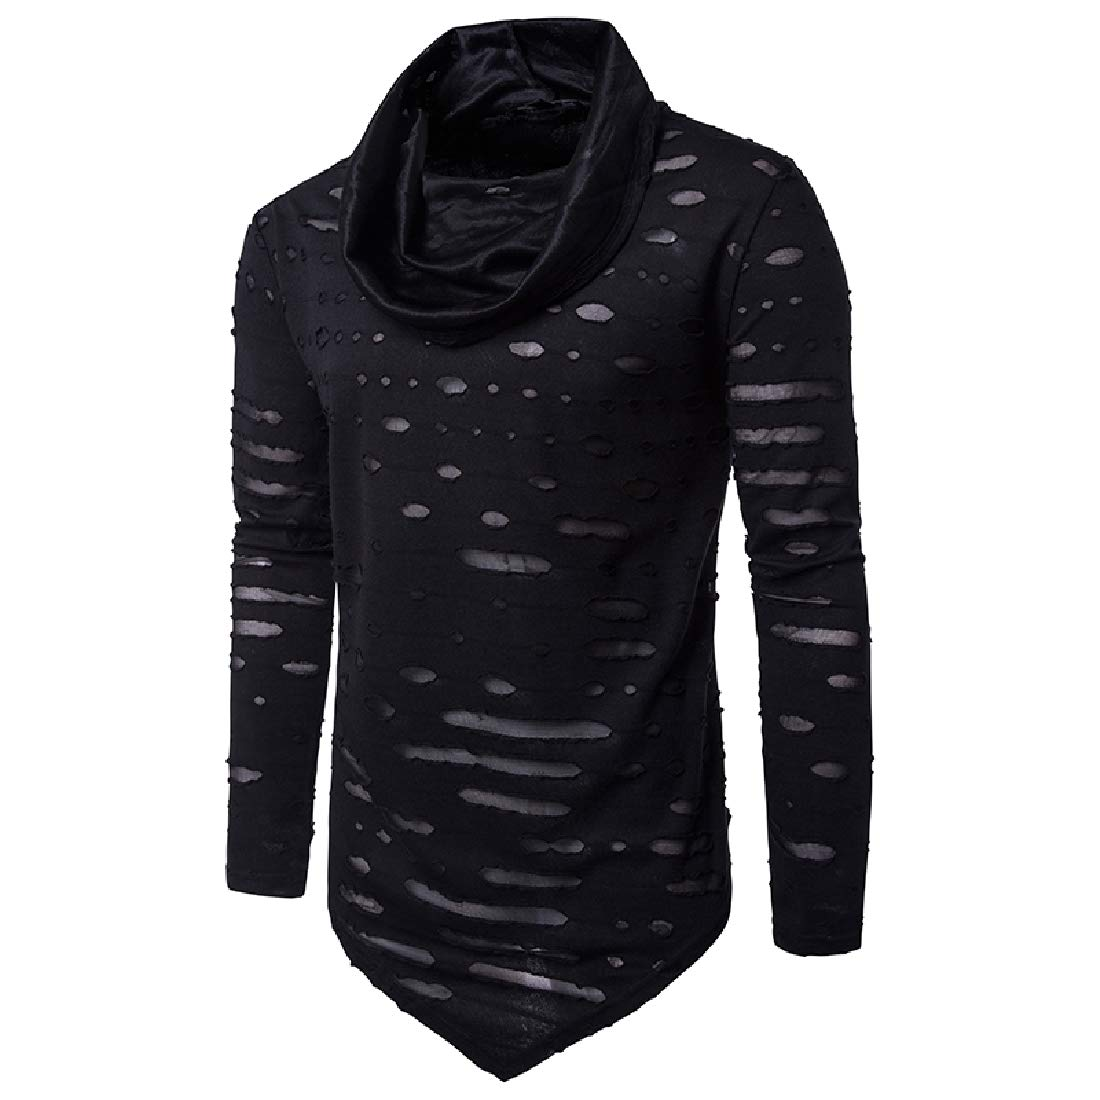 YUNY Mens Fall Winter Plus Size Distressed Pure Color Cozy Shirt Tops Black M